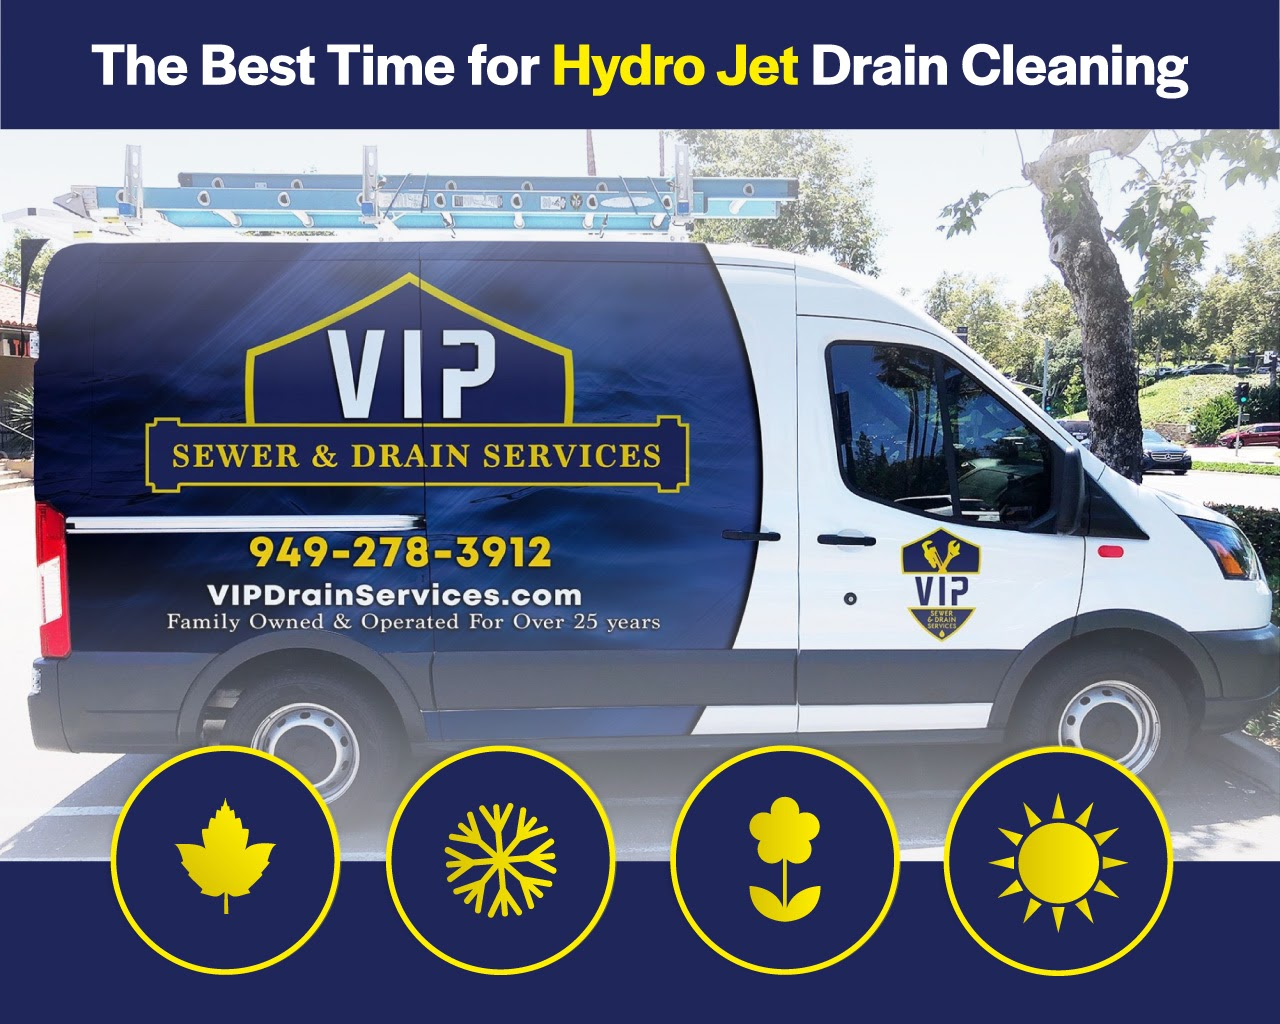 Hydro Jetting Your Pipes